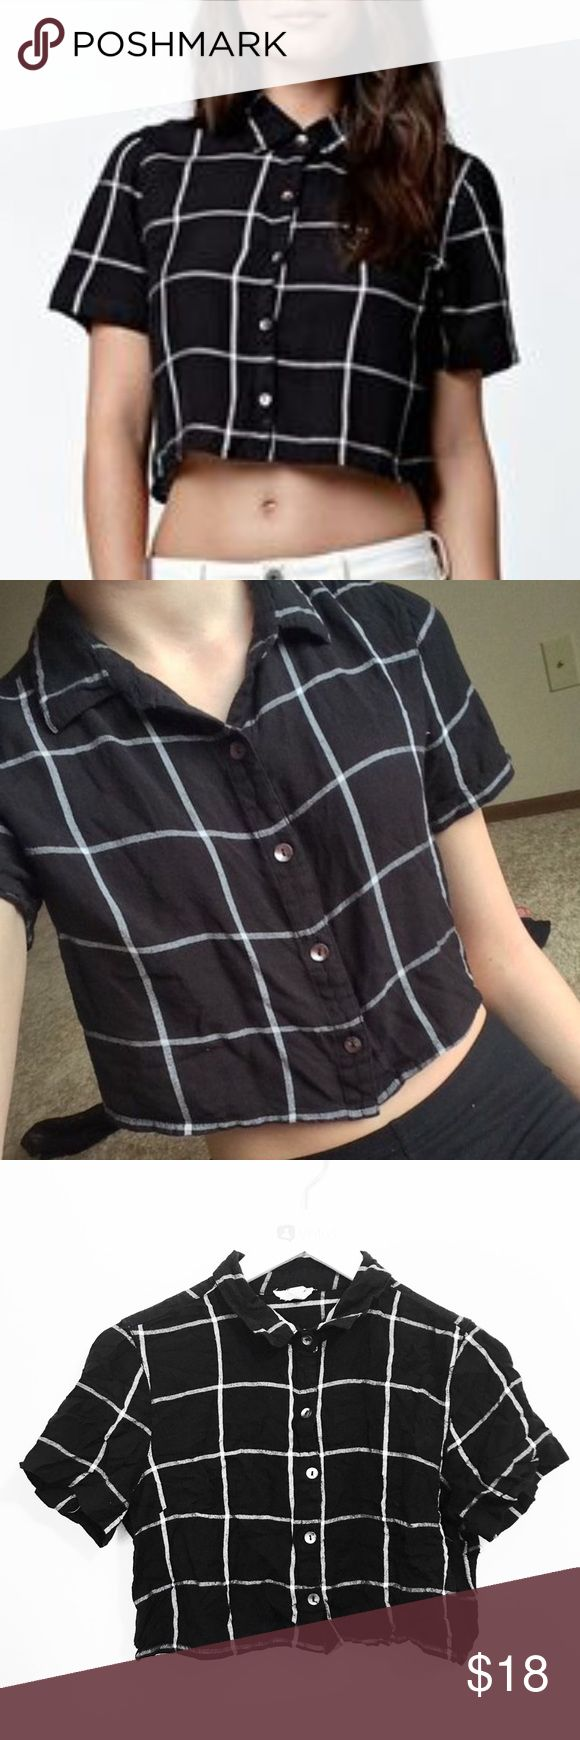 LA Hearts black and white plaid loose fit crop top LA Hearts black and white plaid button down loose fitting crop top. Size medium. LA Hearts Tops Crop Tops